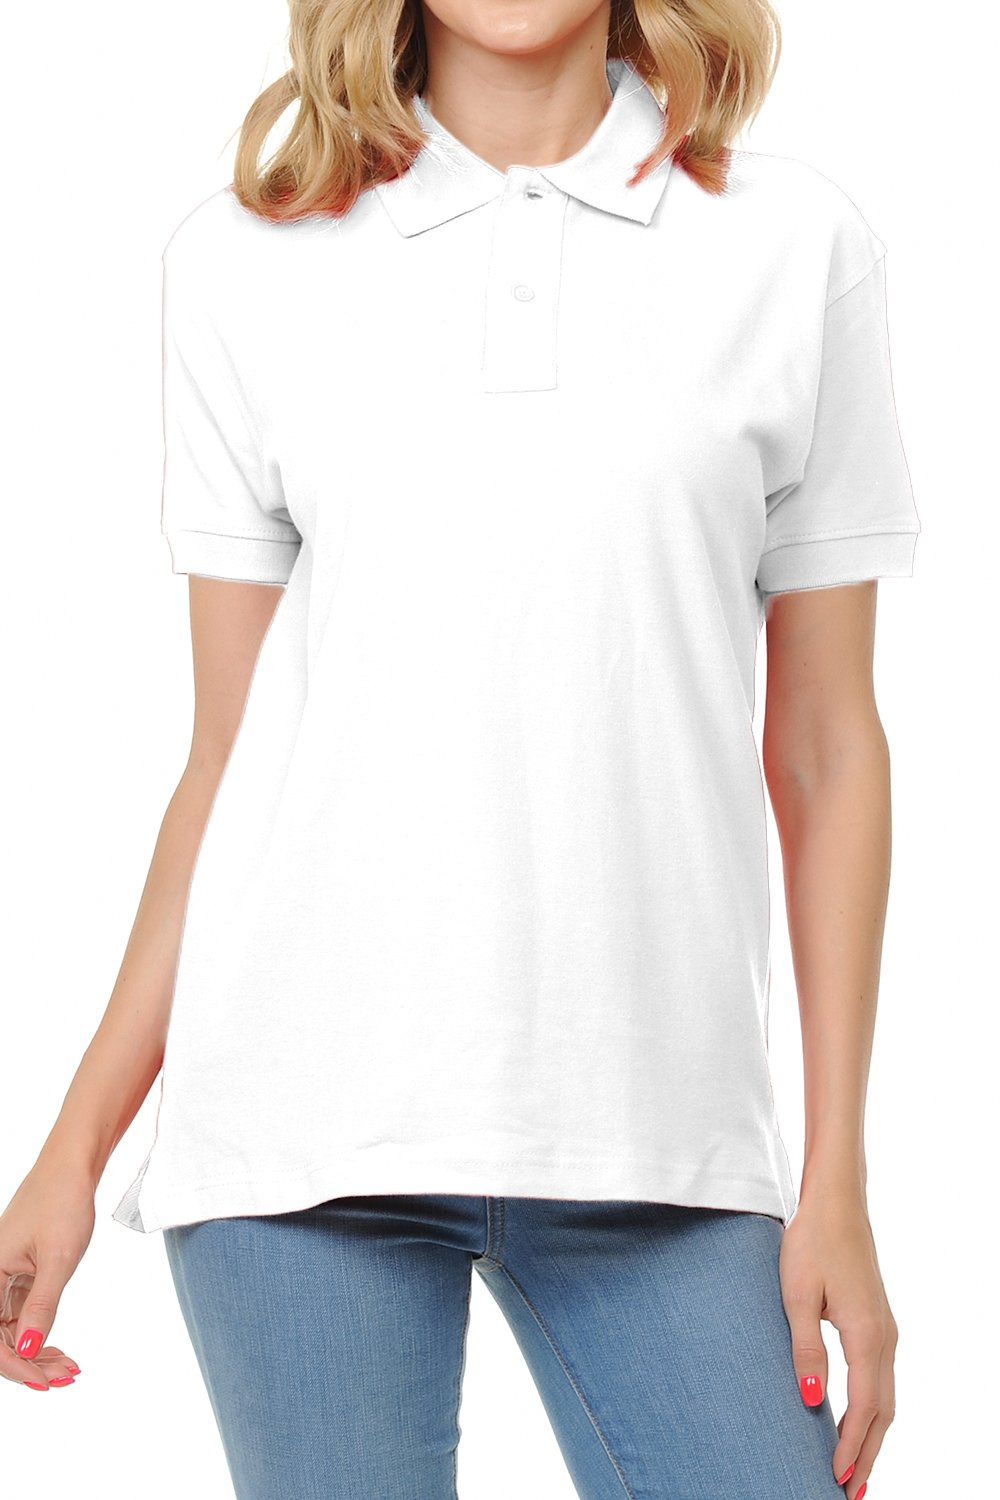 FRESH TEE Women's Adult Unisex 100% Cotton Classic Fit Polo Shirt Short Sleeve for Daily Work School Uniform (Large, White)